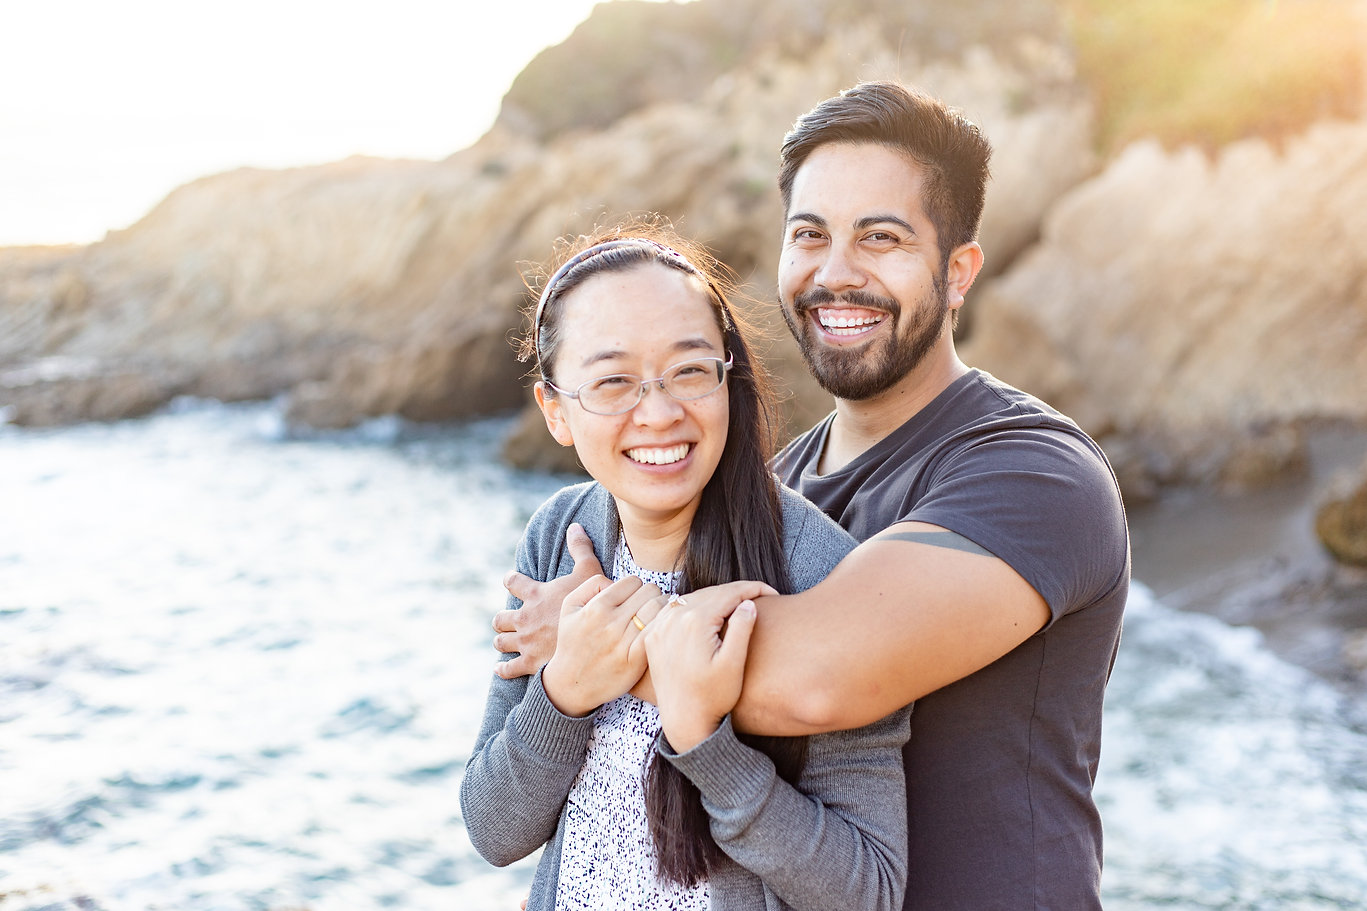 A couple stands together on a beach cliffside in California. They are newly engaged, smiling, as he holds his left arm across her chest. Her back is to him as she holds onto his forearm, where you can see her engagement ring.